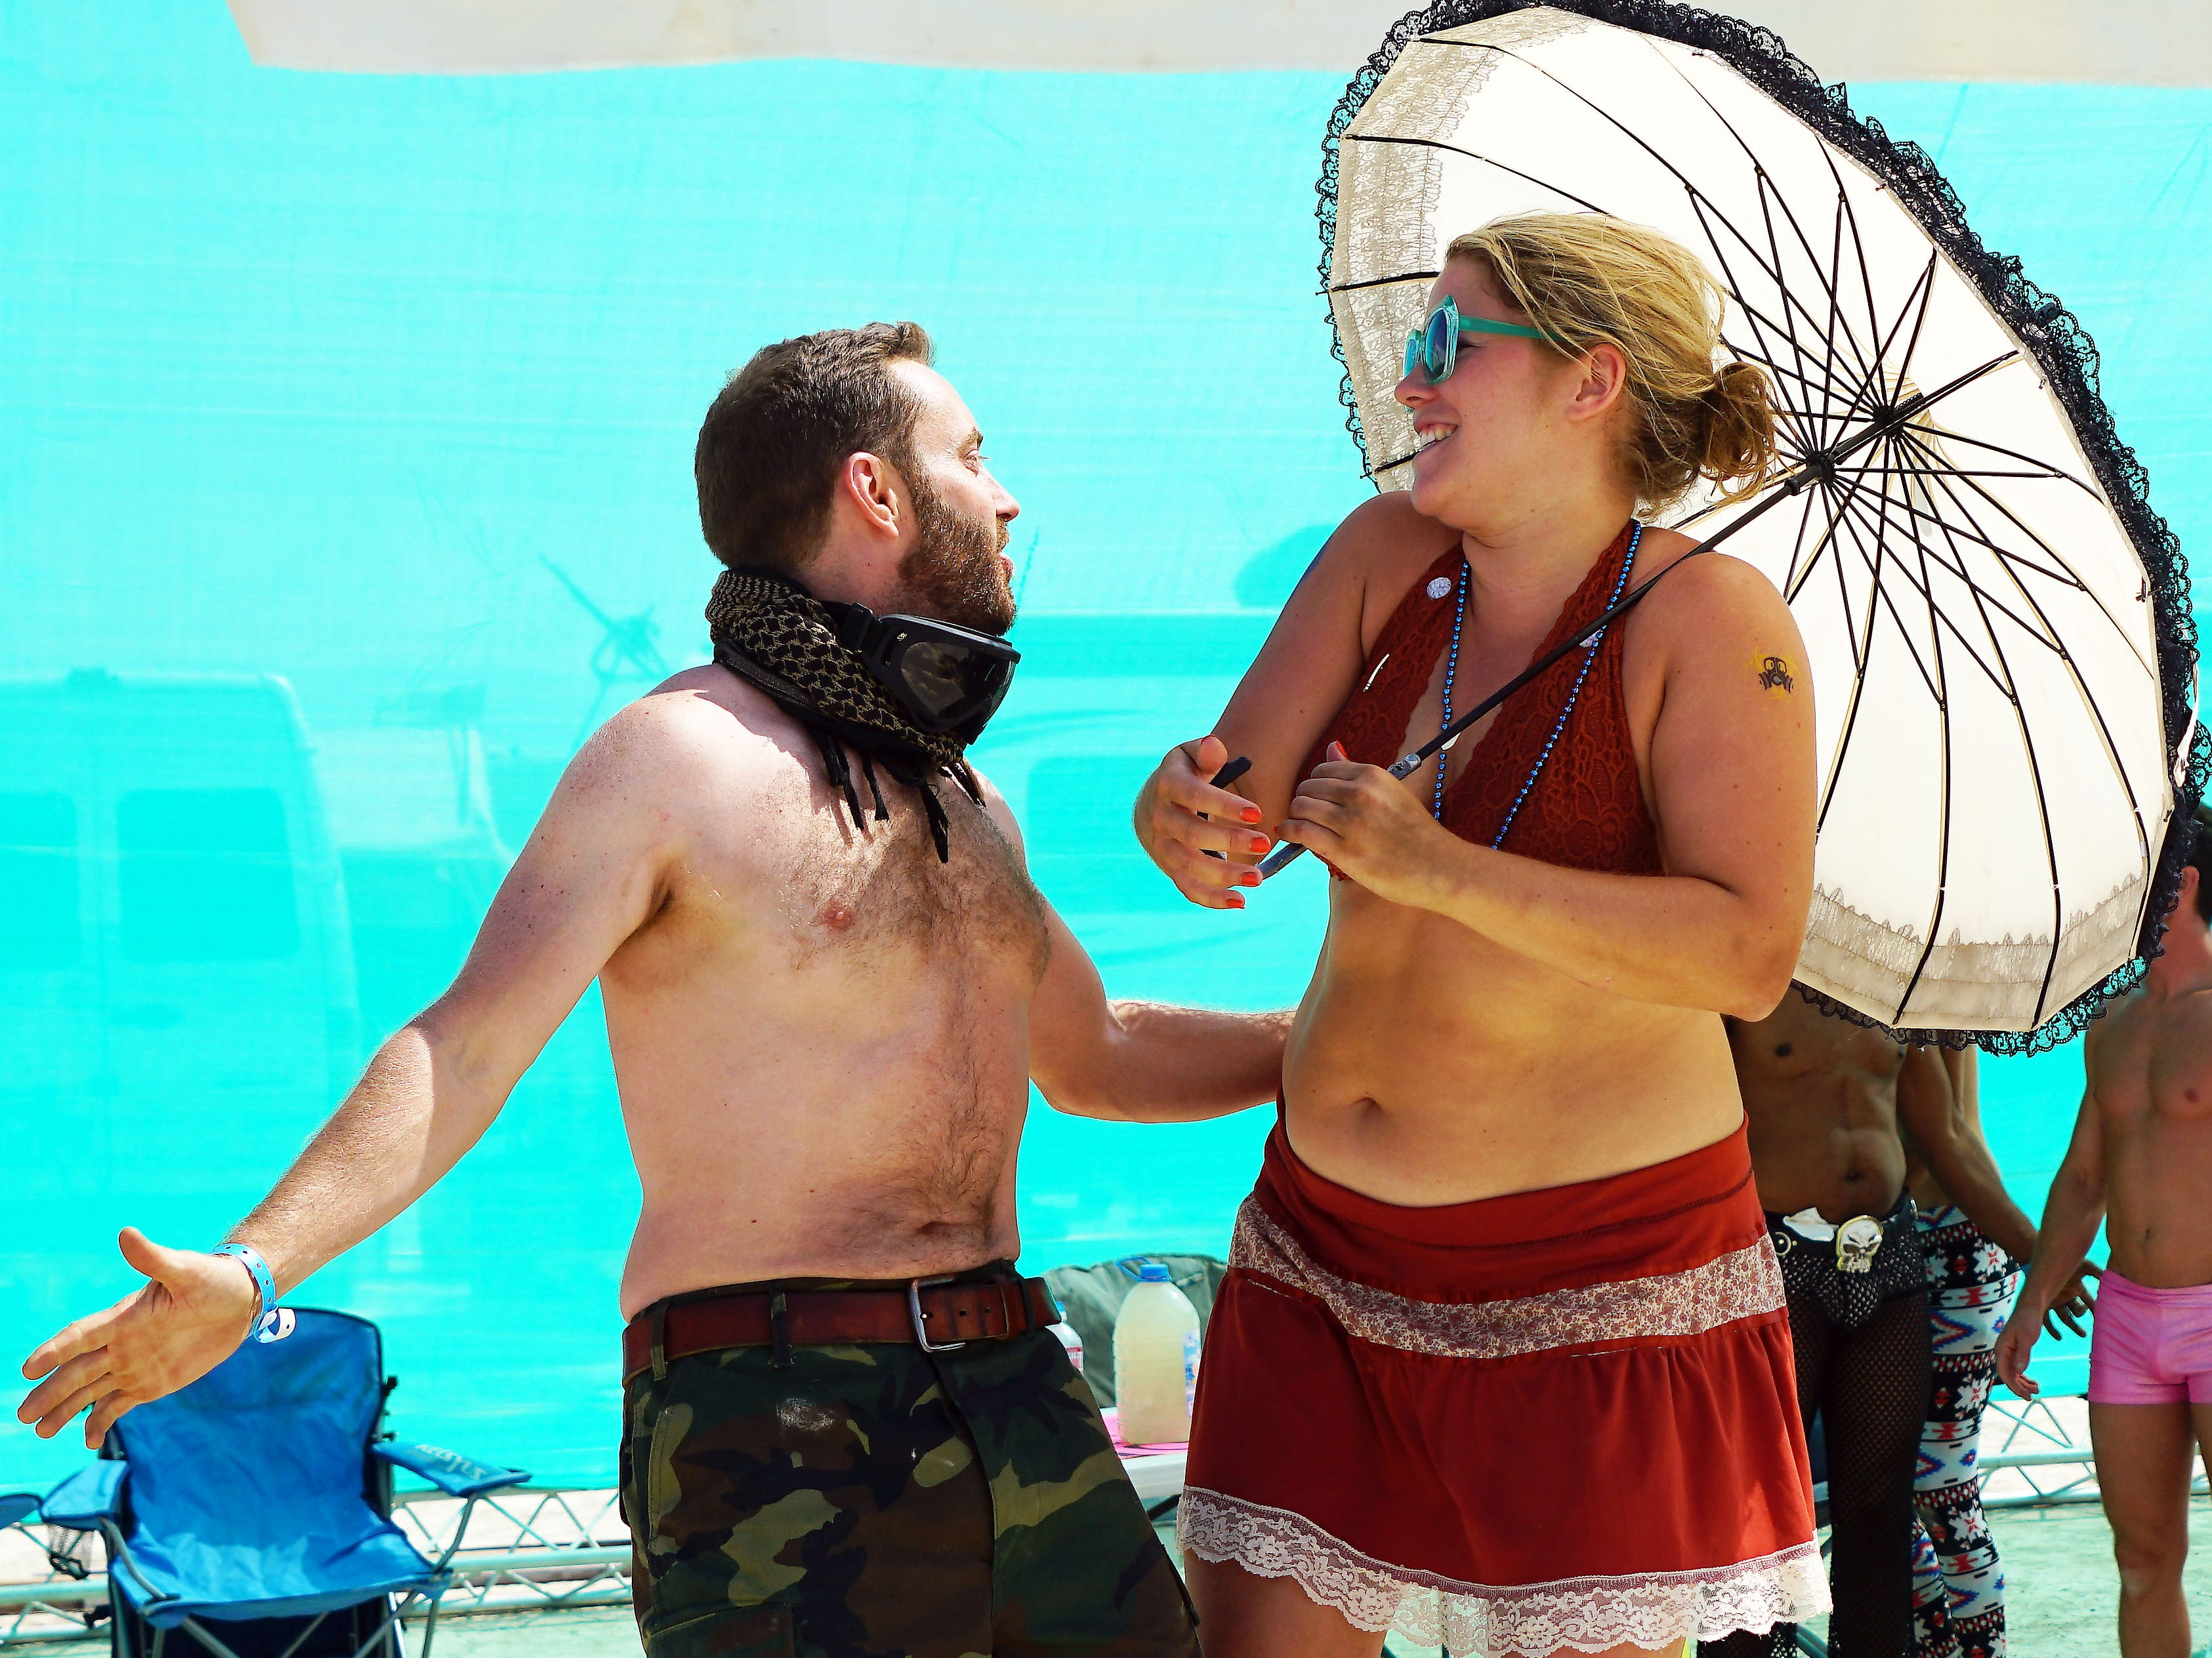 Scott Holden of San Francisco pretends to serenade Hanna Sabelstrom, also of San Francisco, during a party at Burning Man.